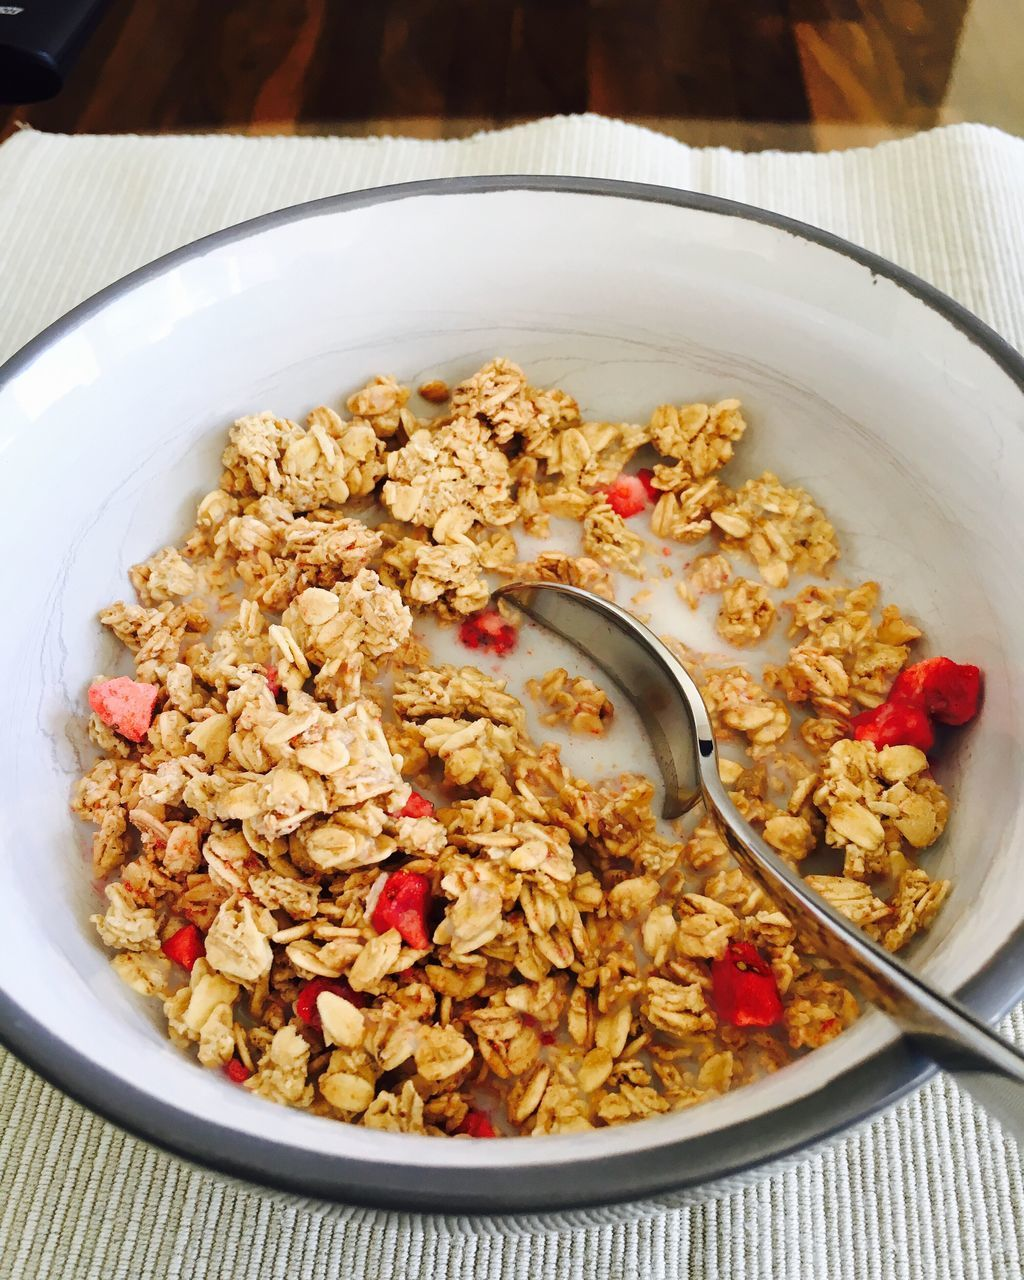 breakfast cereal, breakfast, granola, healthy eating, bowl, food and drink, food, oats - food, close-up, freshness, oat flake, corn flakes, table, fruit, meal, no people, healthy lifestyle, indoors, ready-to-eat, day